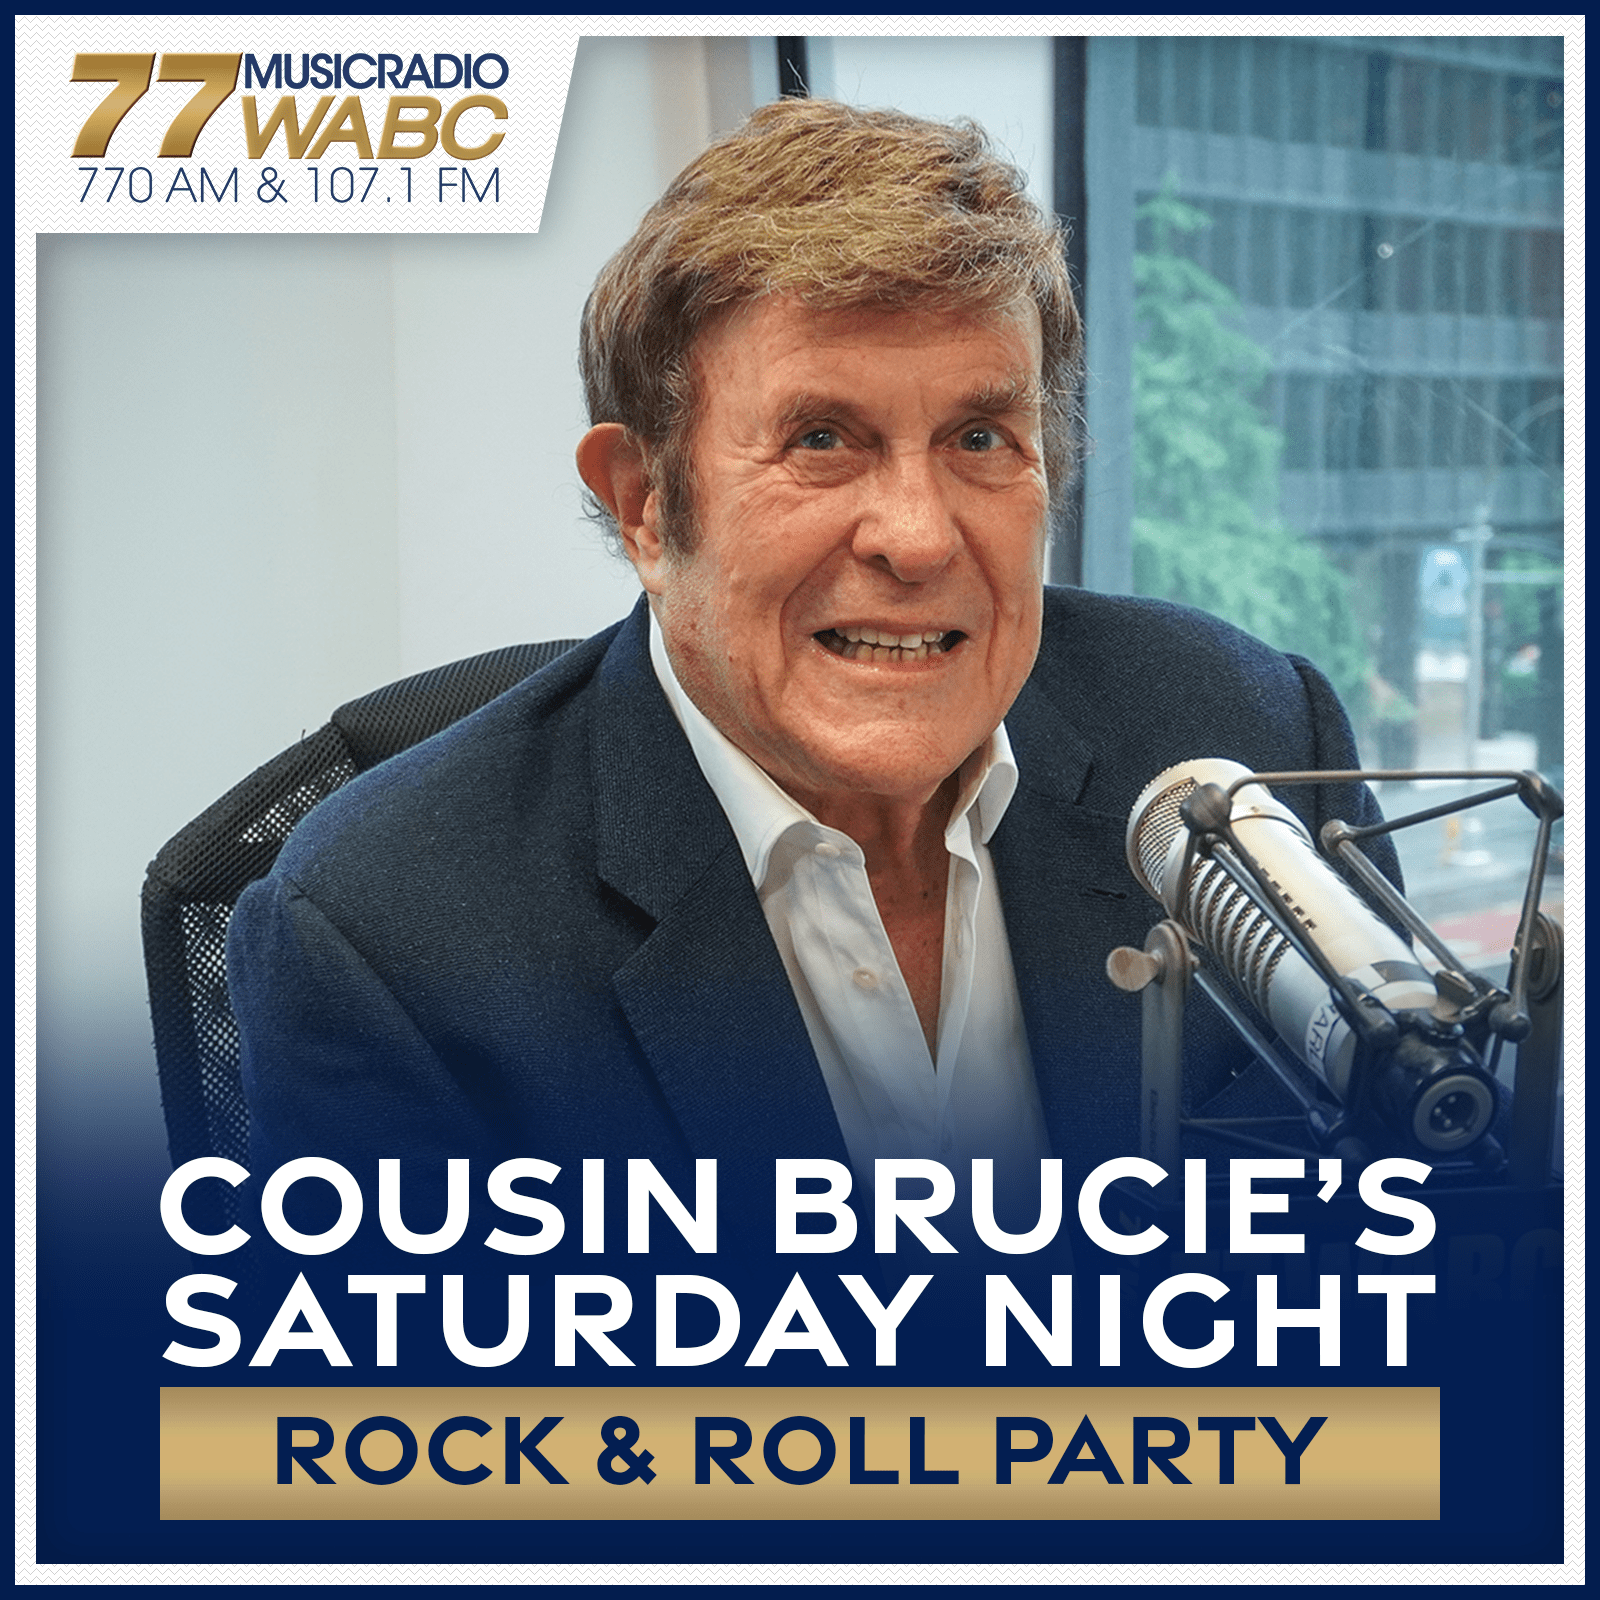 Cousin Brucie's Saturday Night Rock & Roll Party